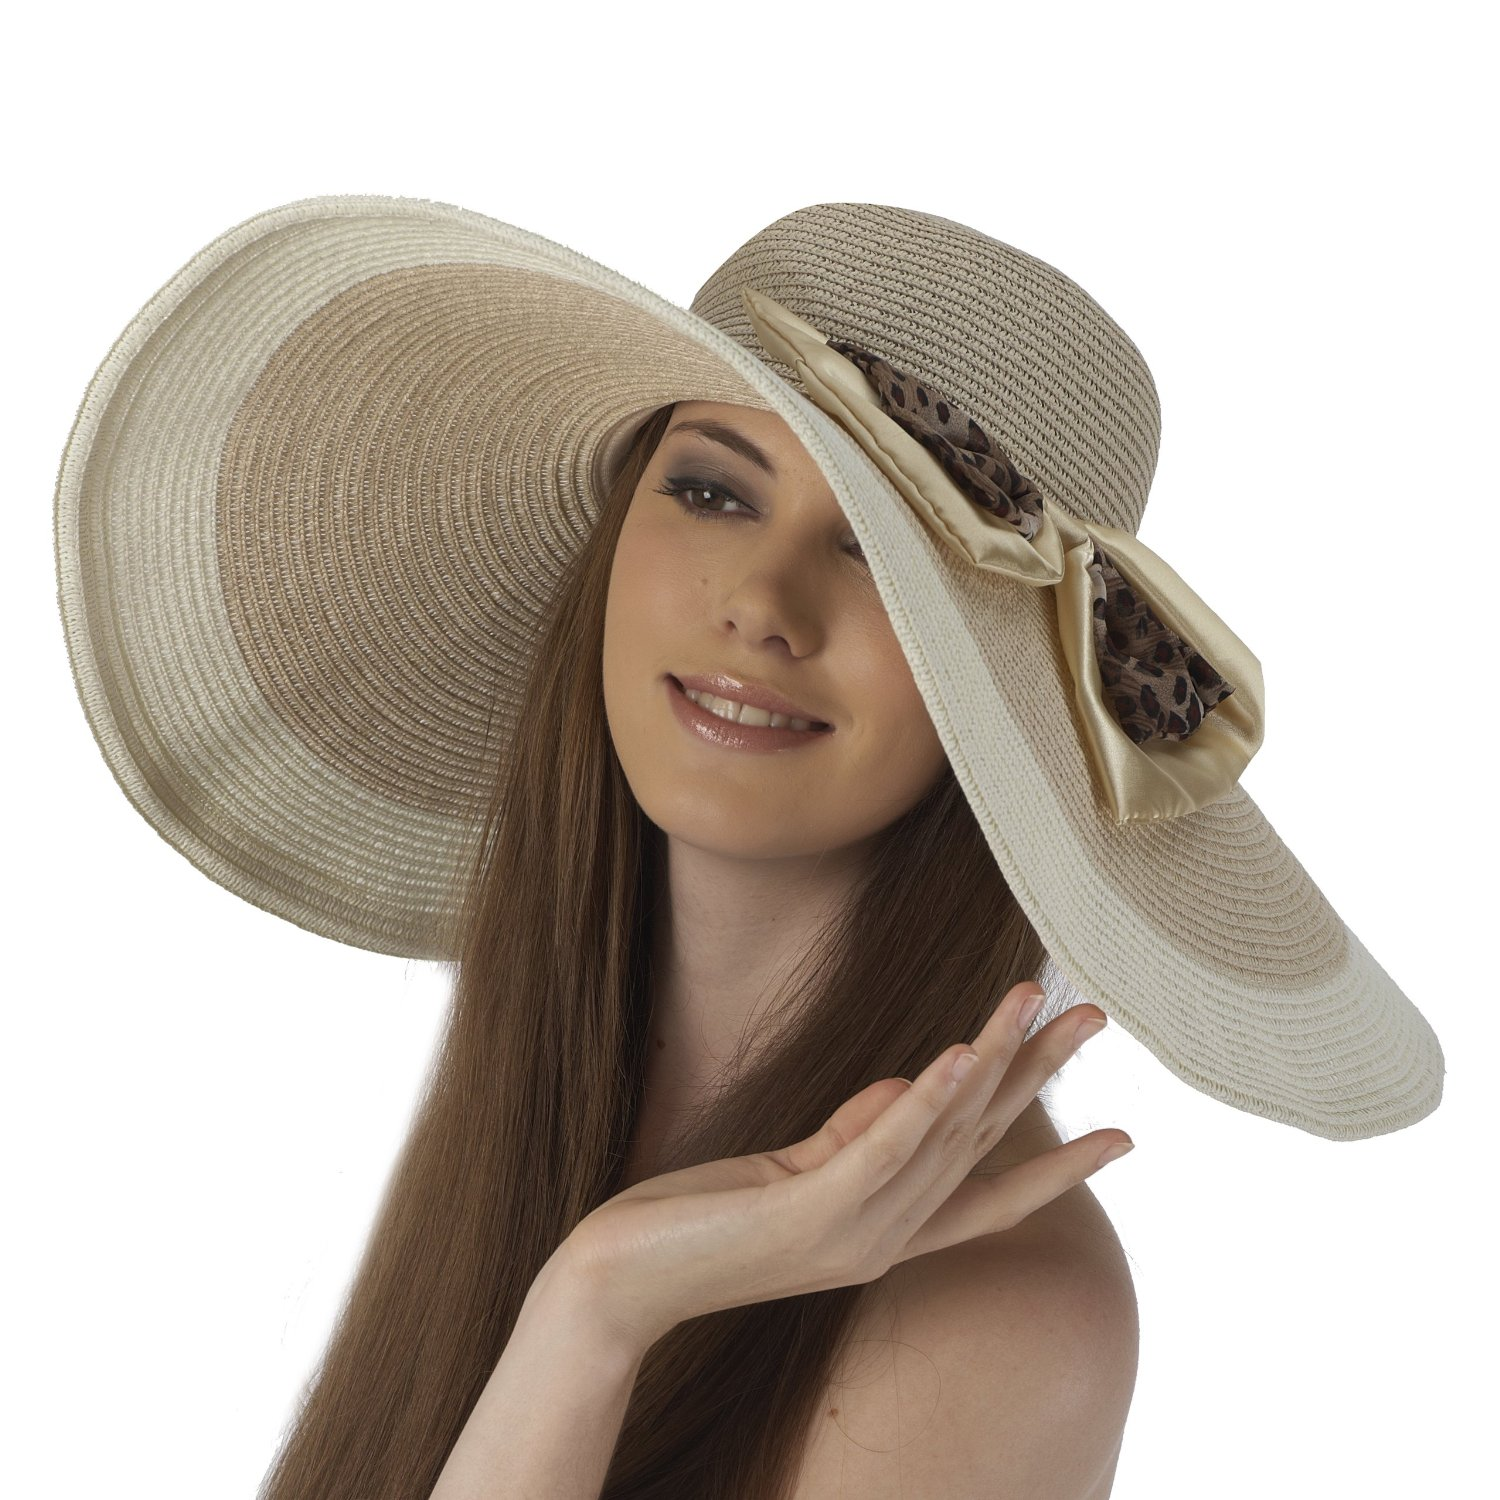 Hairstyles For Long Hair With Hats : Summer+Hats+for+Girls+Trends+2012-Hats-Women-hat+tends+-summer+2012 ...